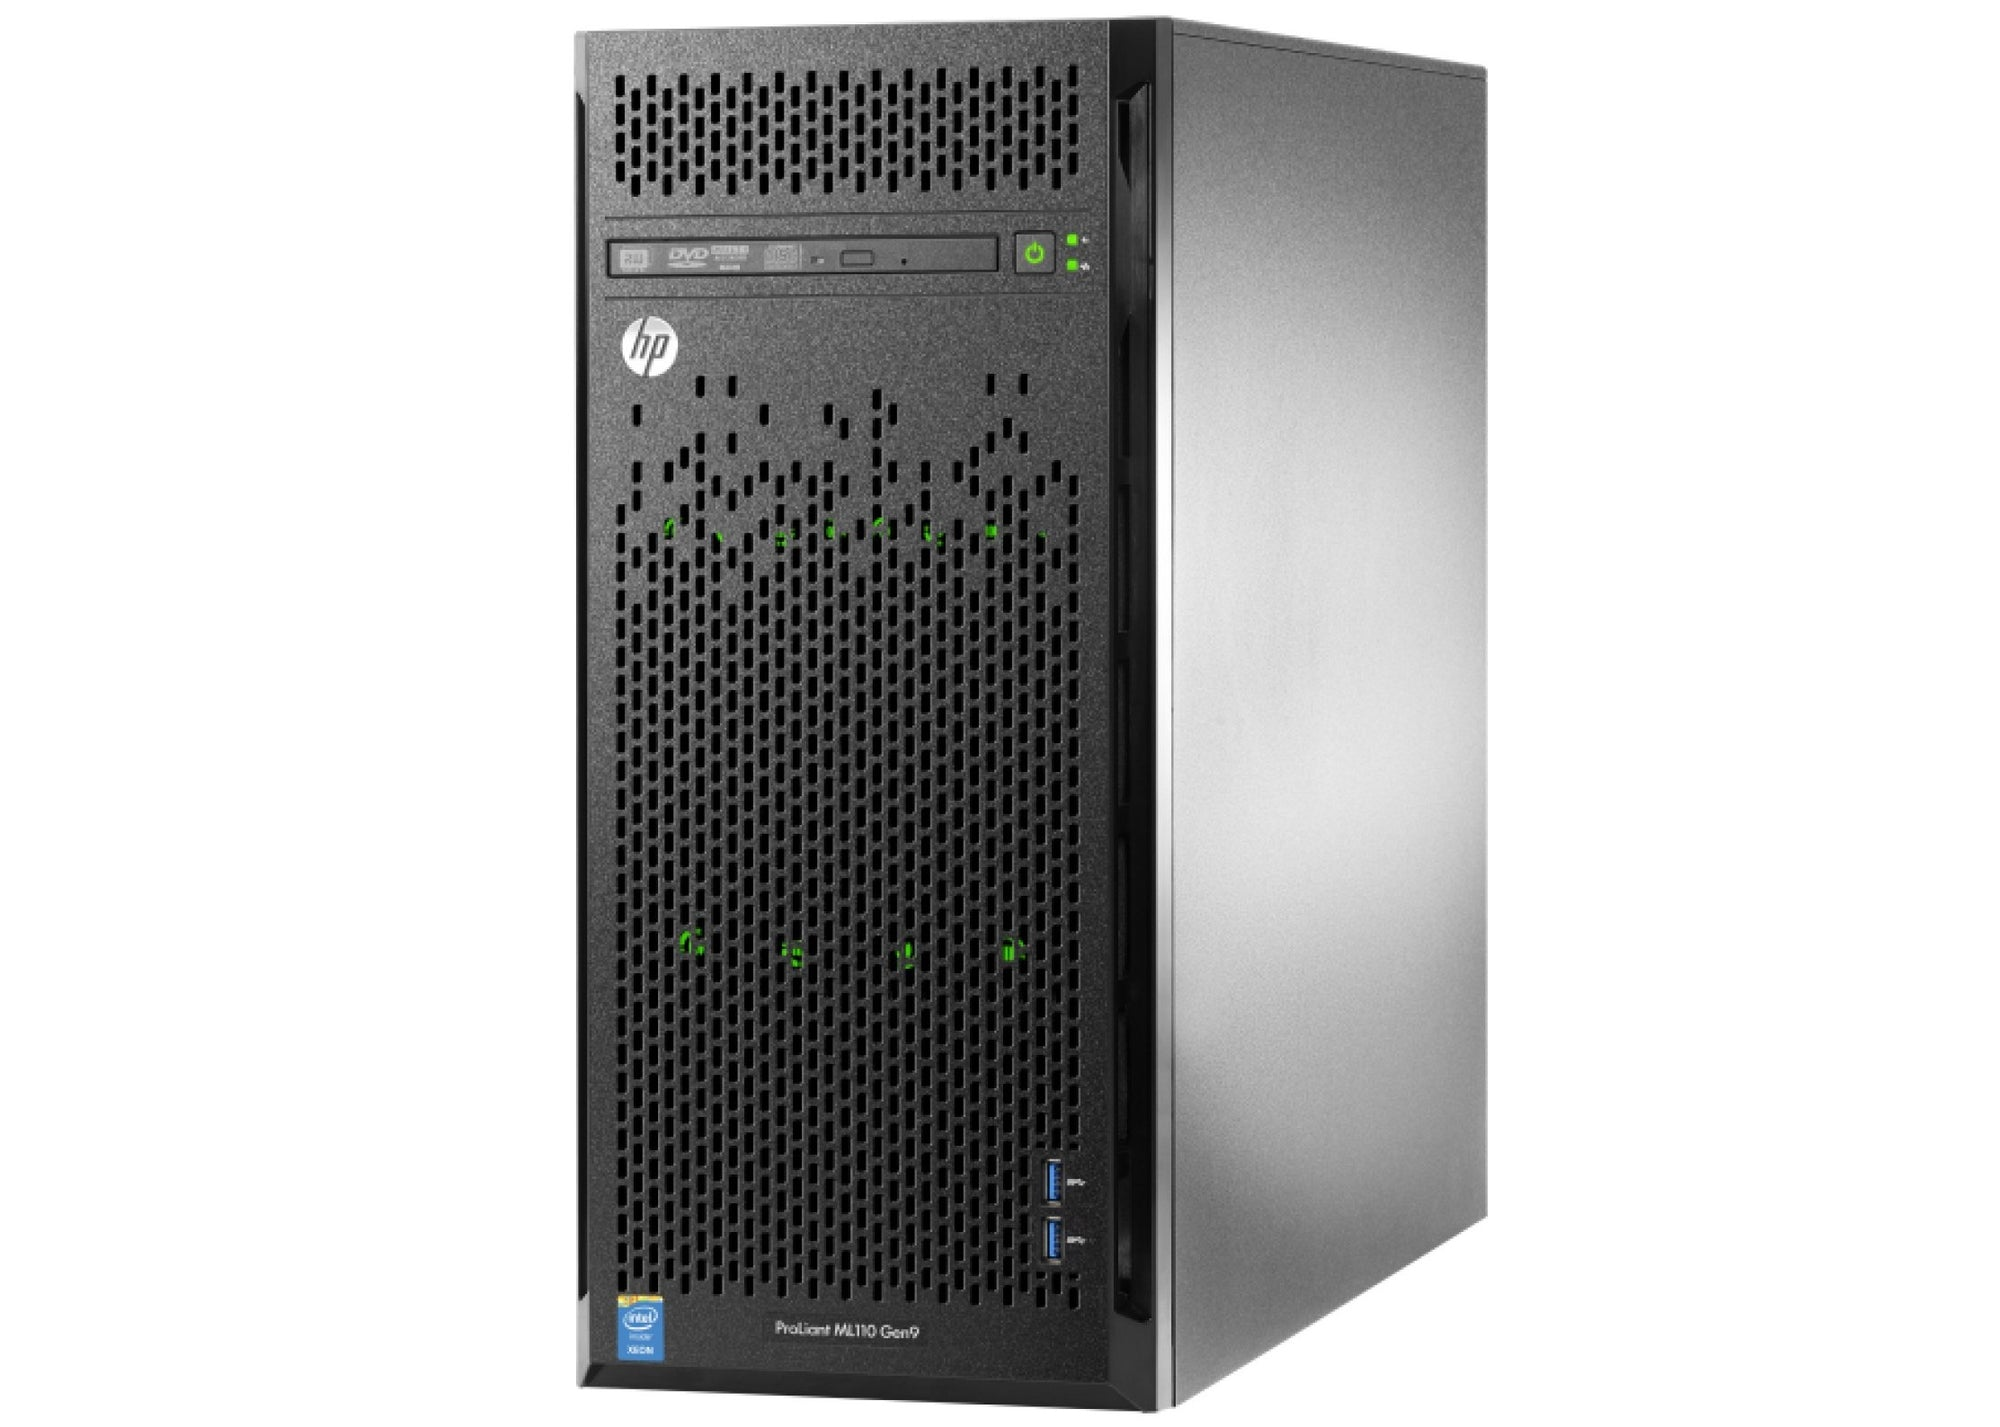 Refurbished HPE ProLiant ML110 Gen9 Configure to Order Tower Server